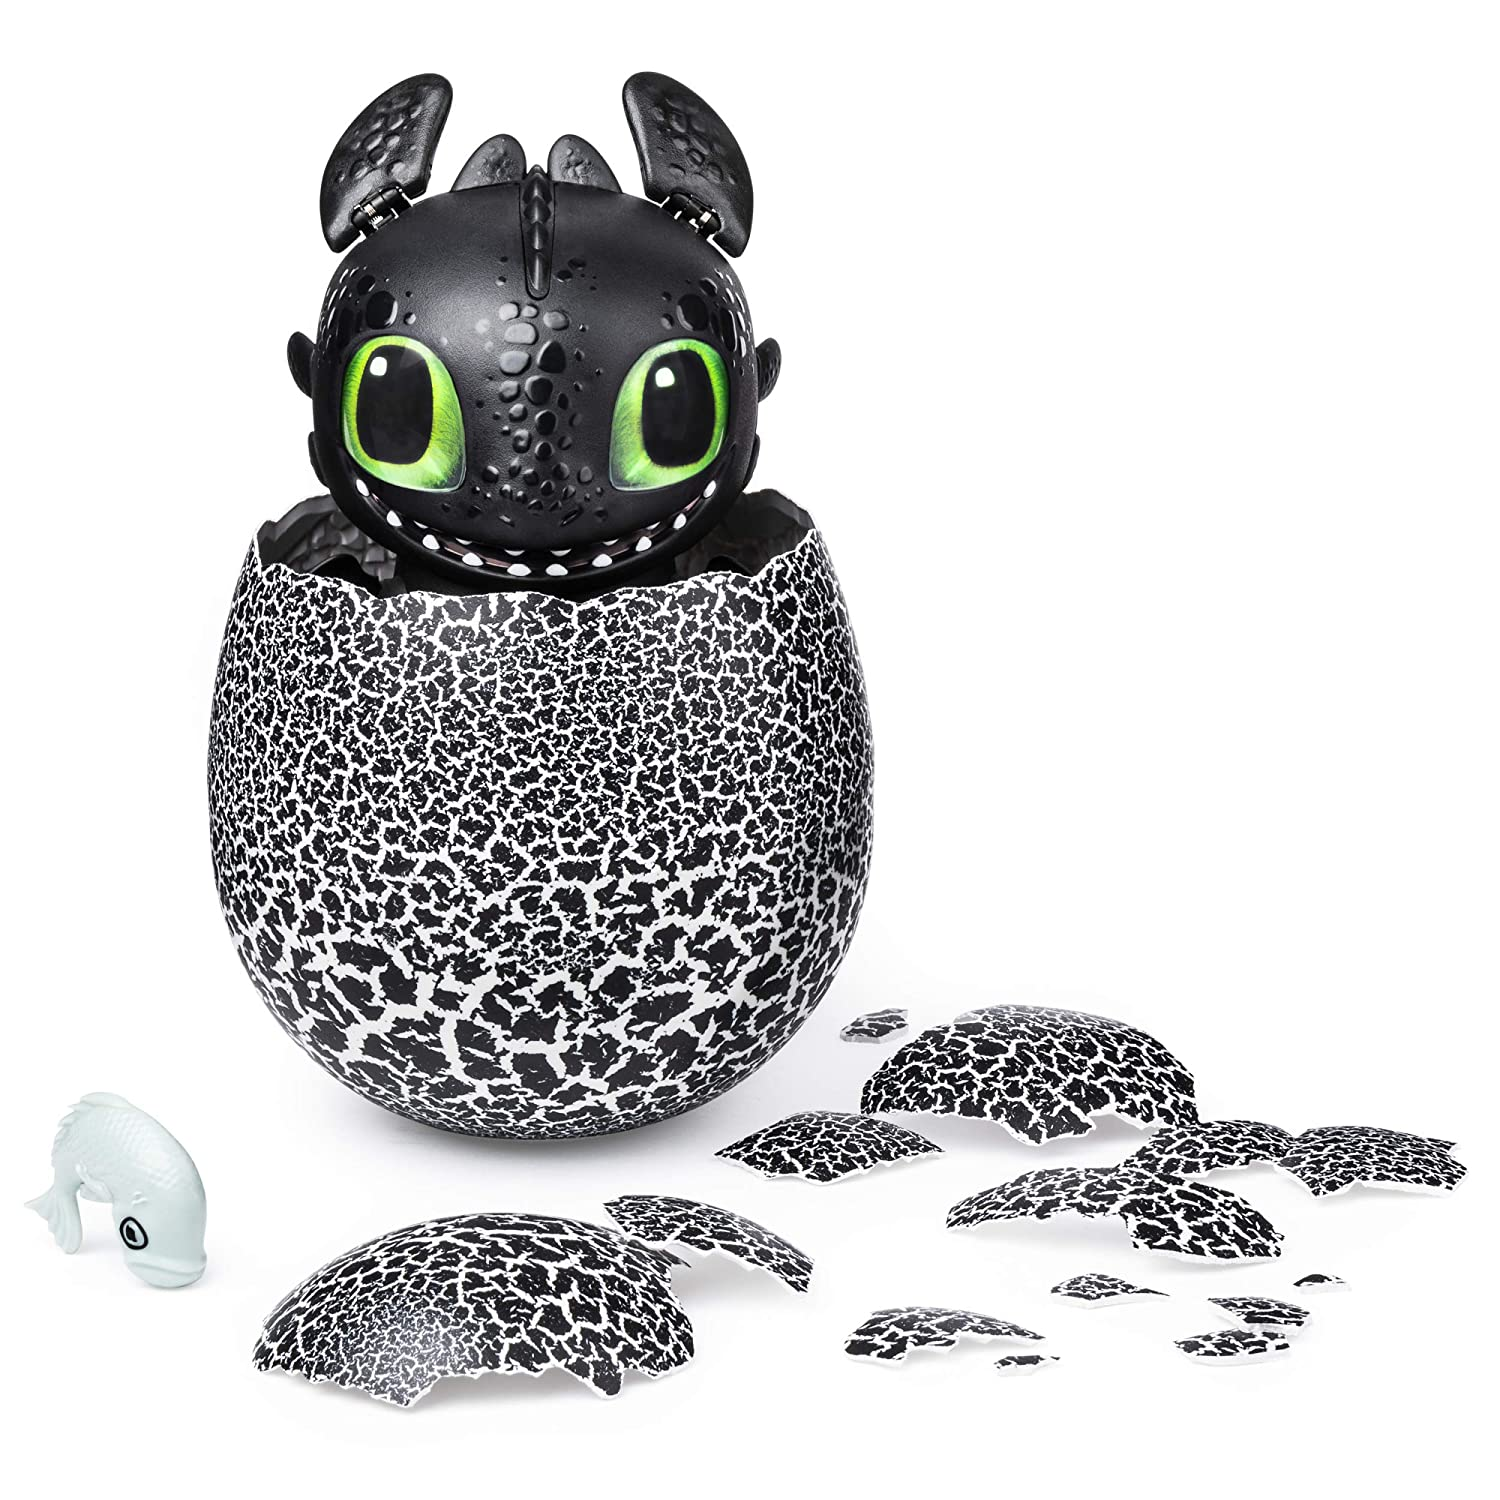 Amazon.es: Spin Master Dragons Hatching Toothless Juguete ...